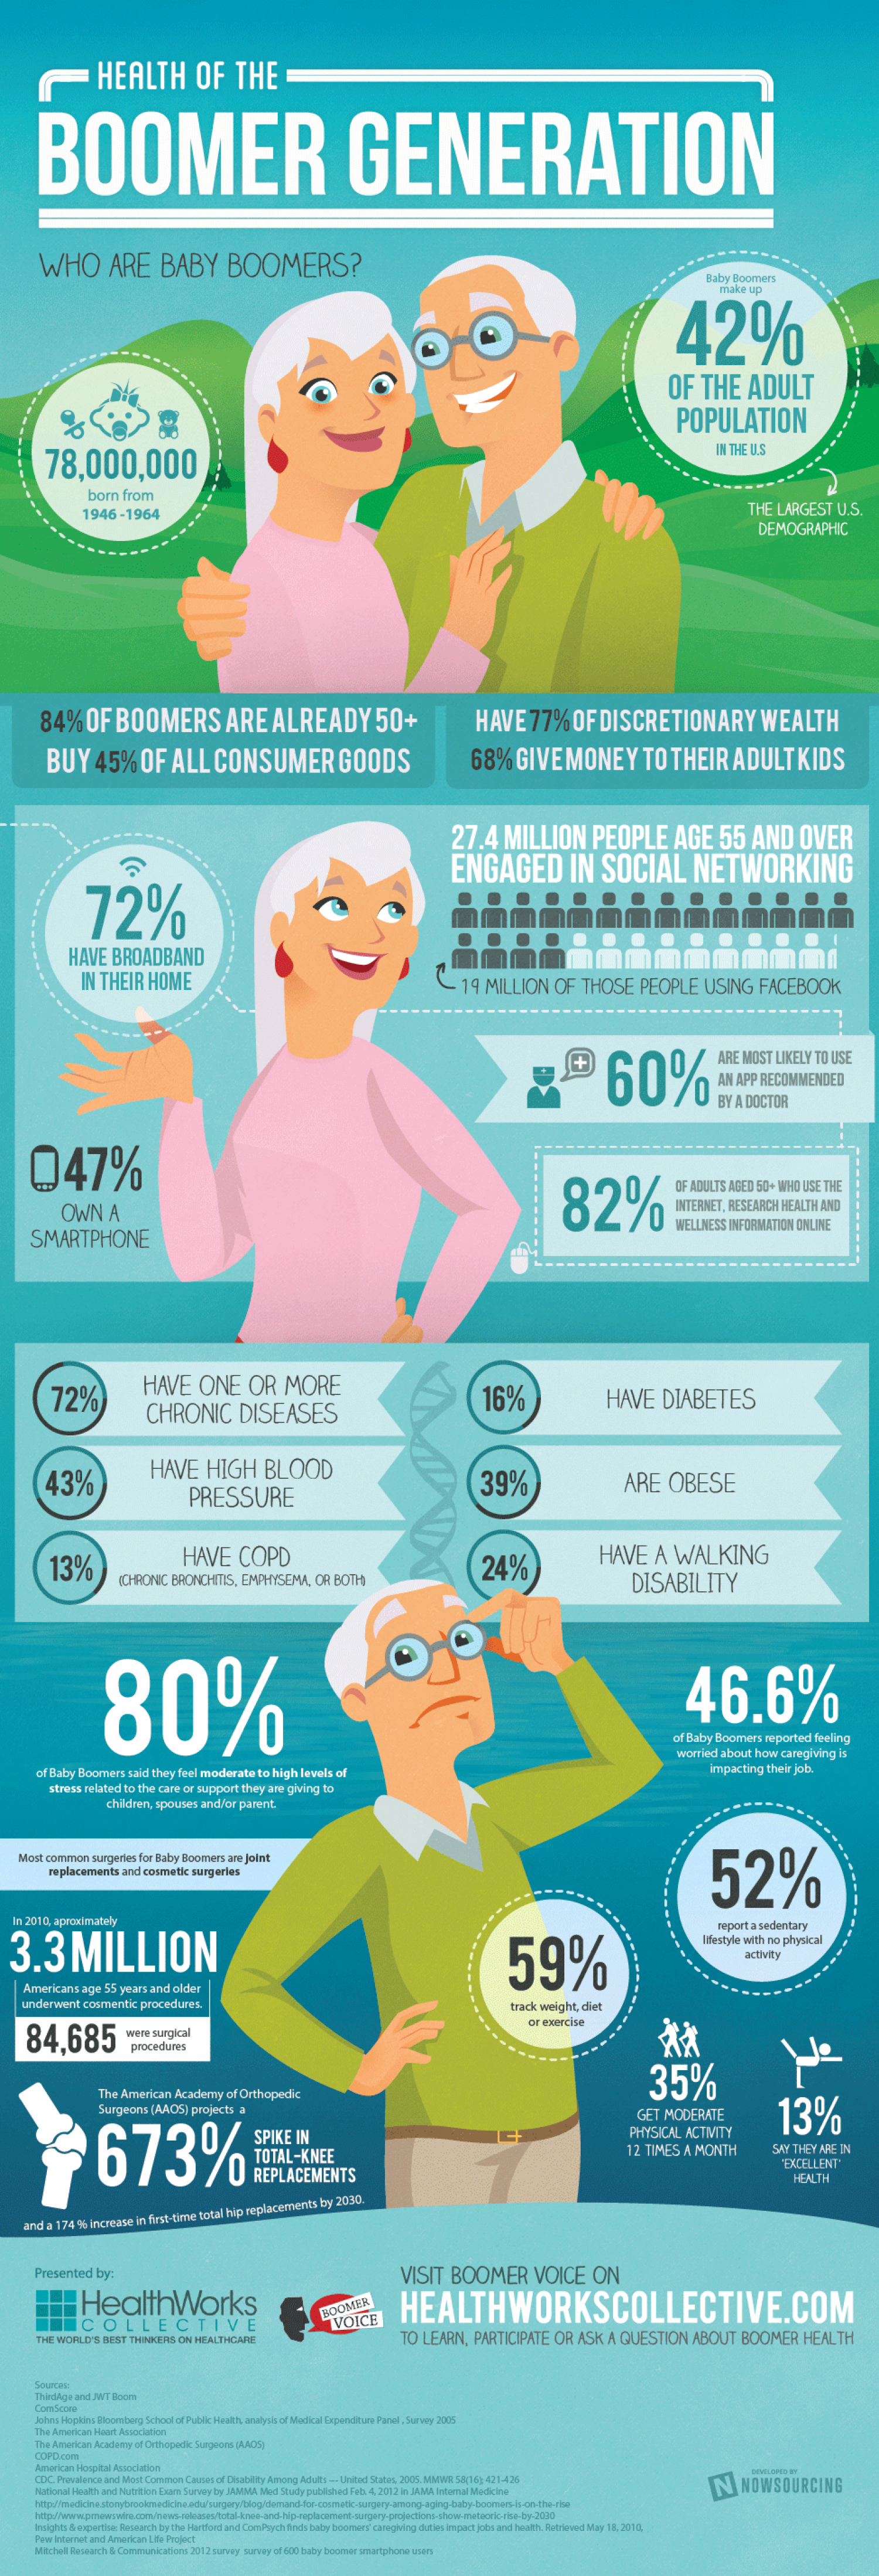 Health of the Boomer Generation Infographic